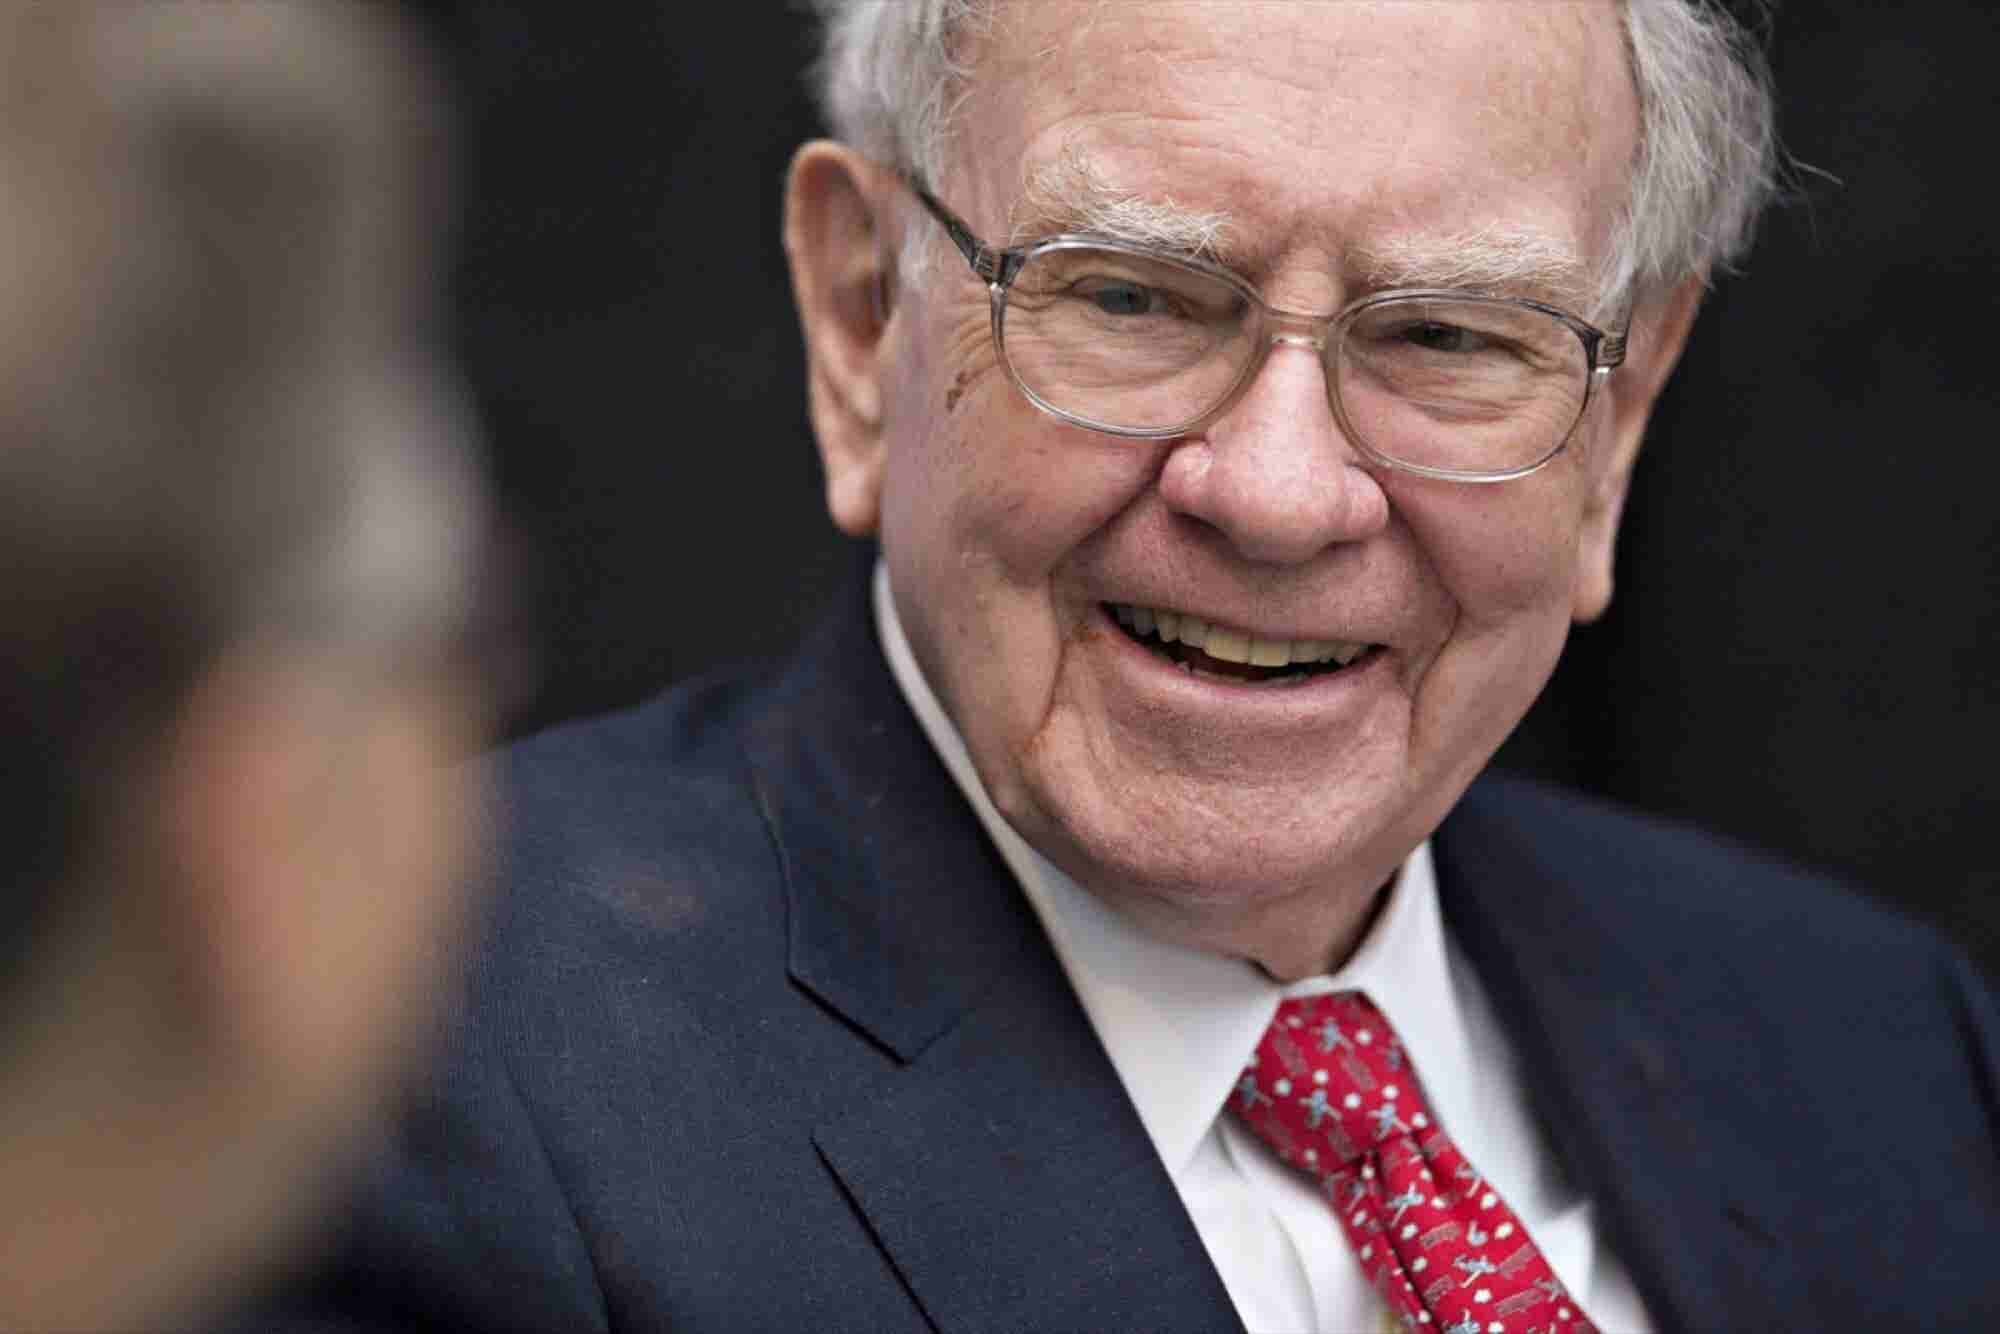 We're Not in a Real Estate Bubble, Warren Buffett Says